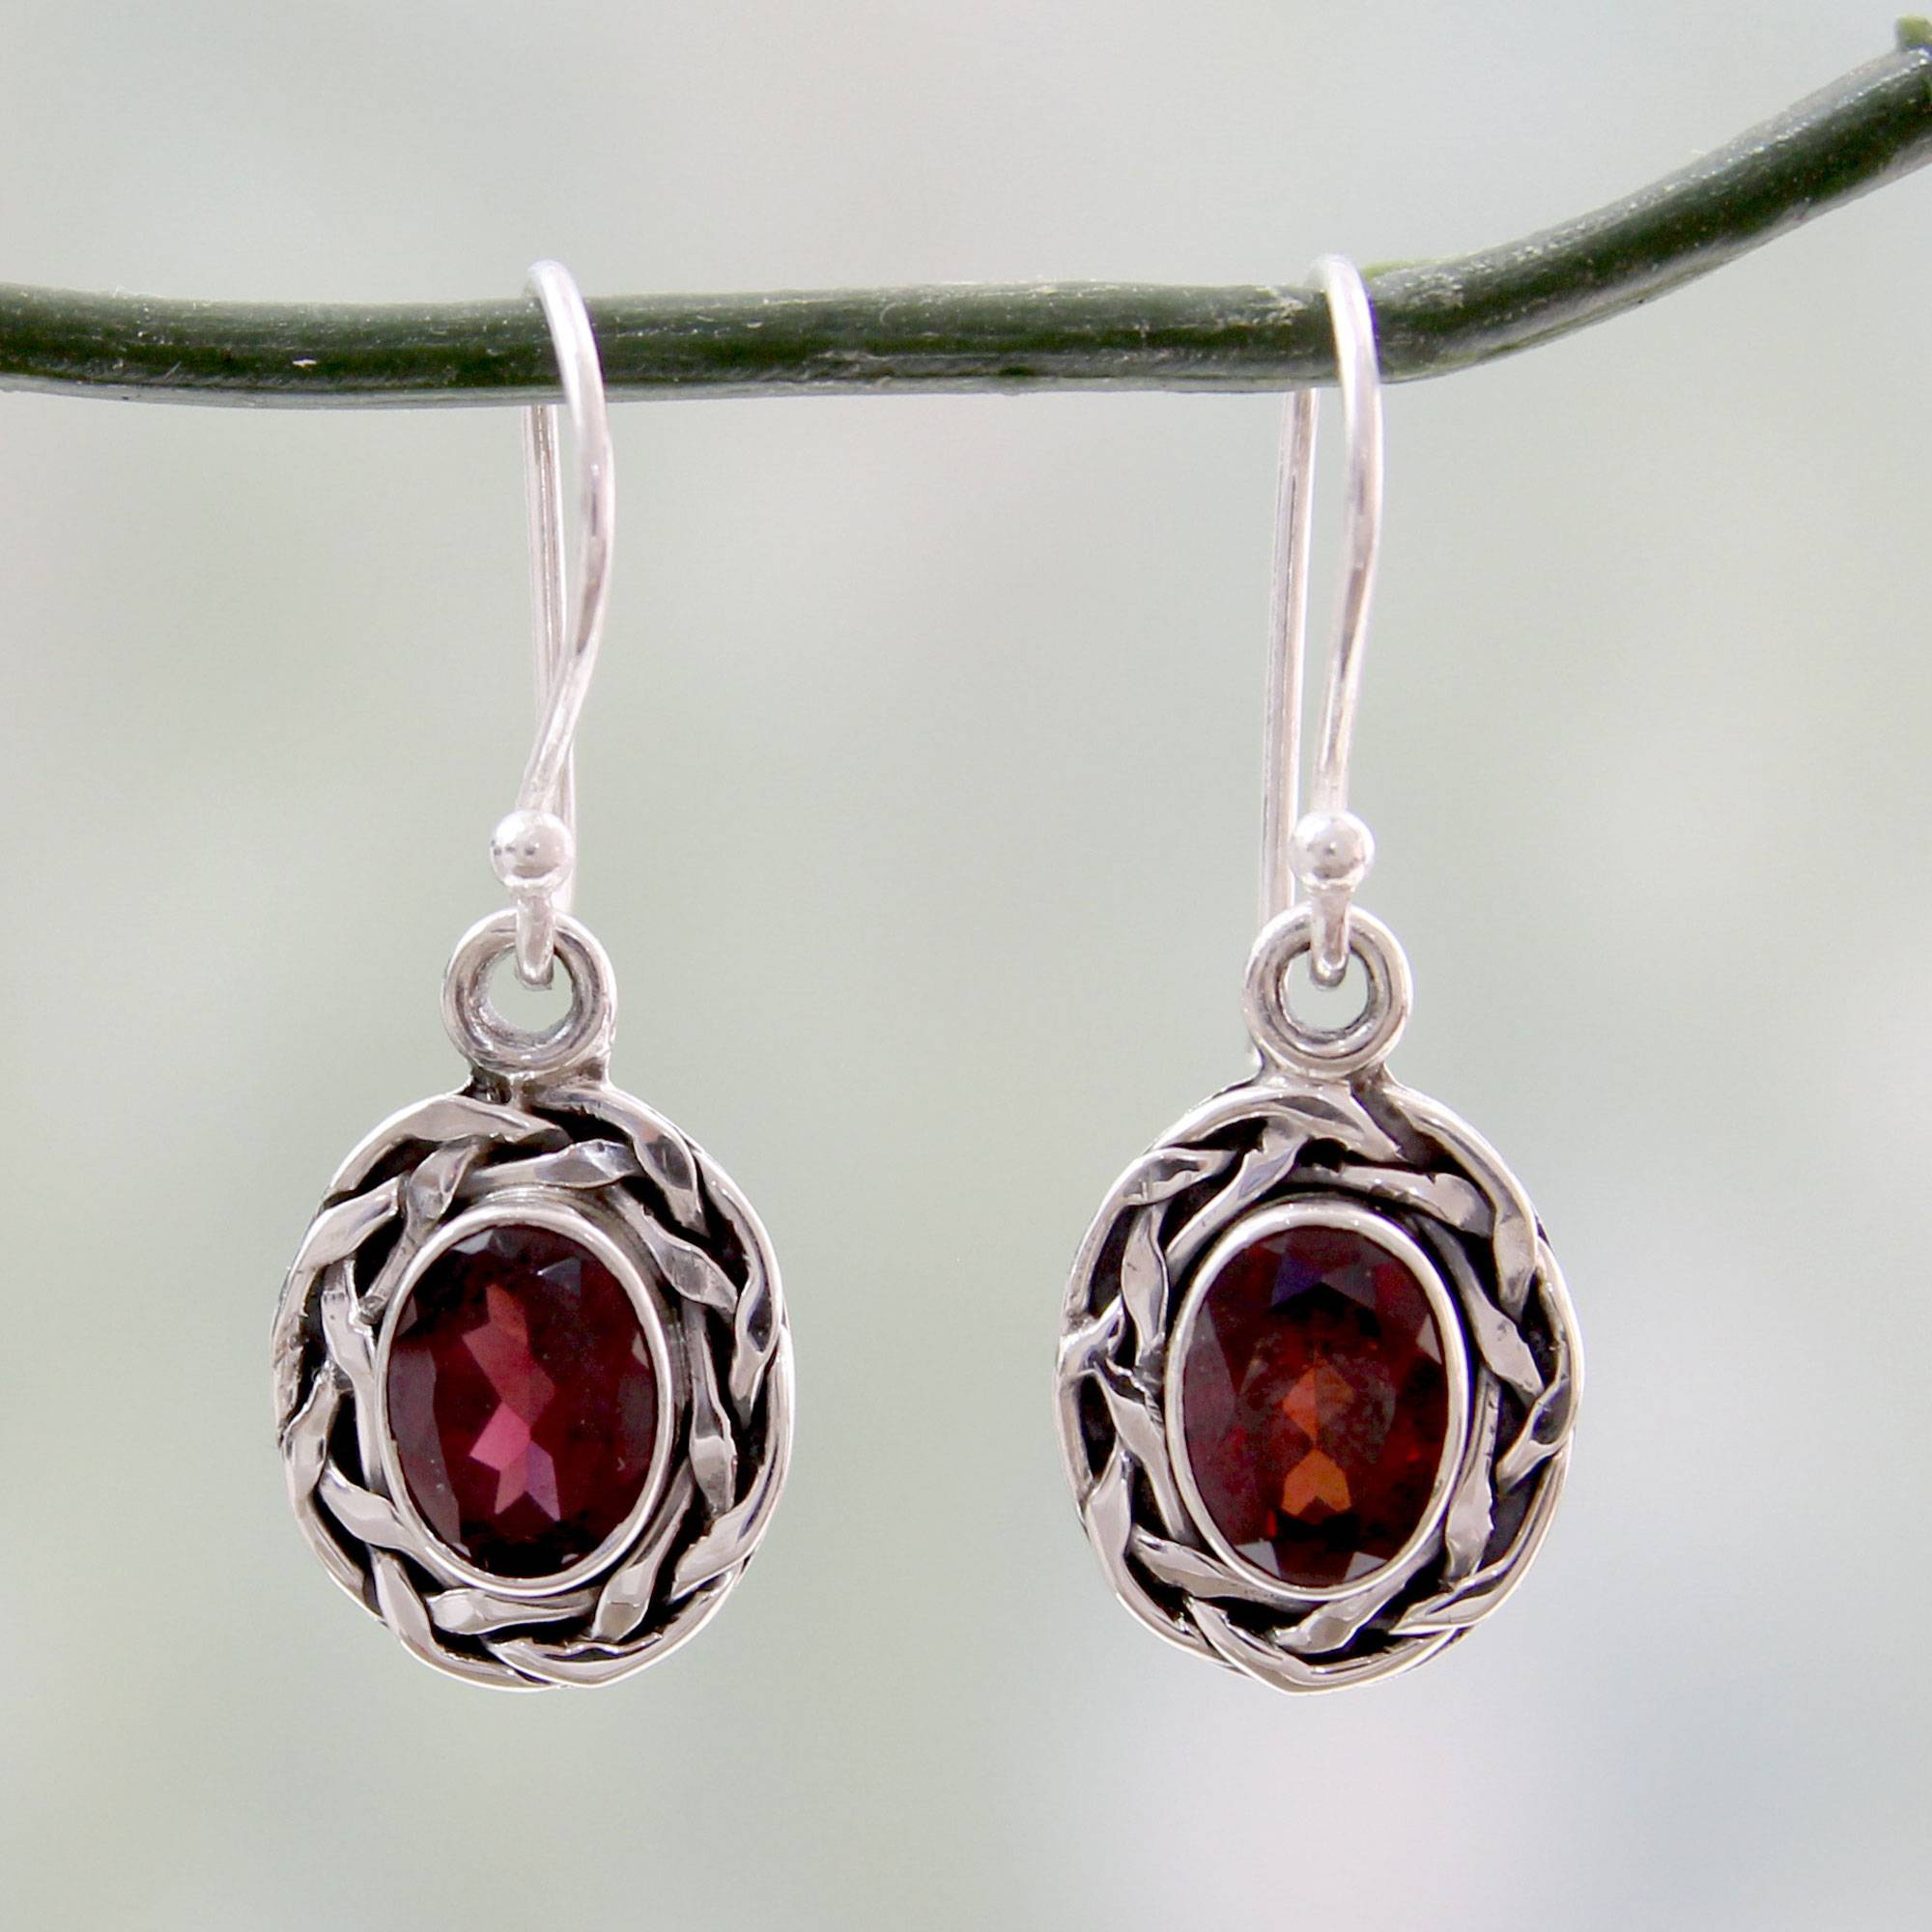 Garnet Dangle Earrings Set in Woven 925 Sterling Silver Indian